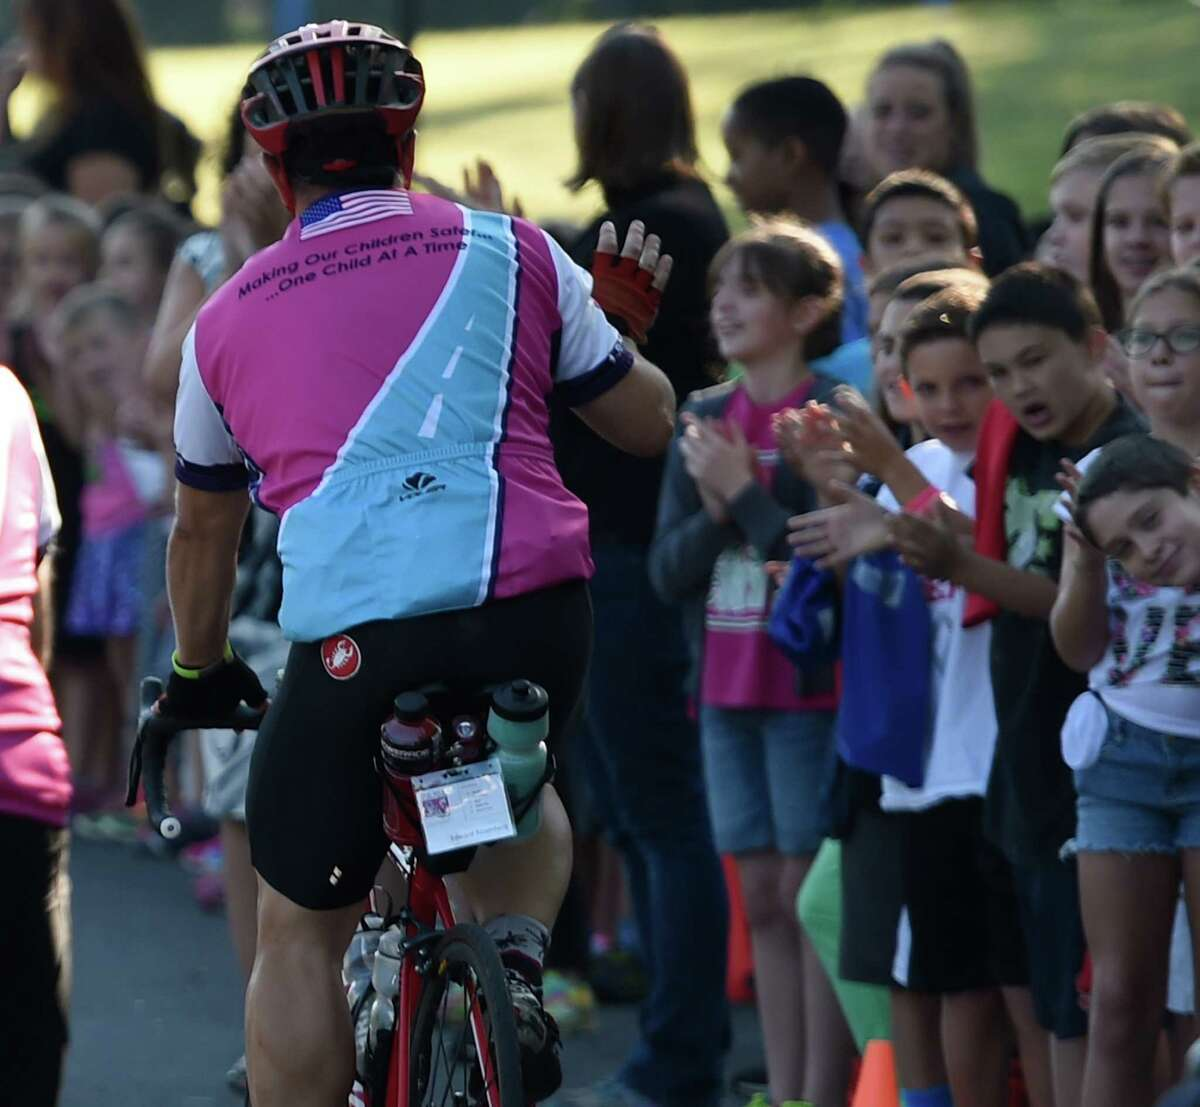 Students cheer loudly as the Ride for Missing Children makes a stop at Forts Ferry Elementary School Friday morning Sept. 19, 2015 in Colonie, N.Y. (Skip Dickstein/Times Union)